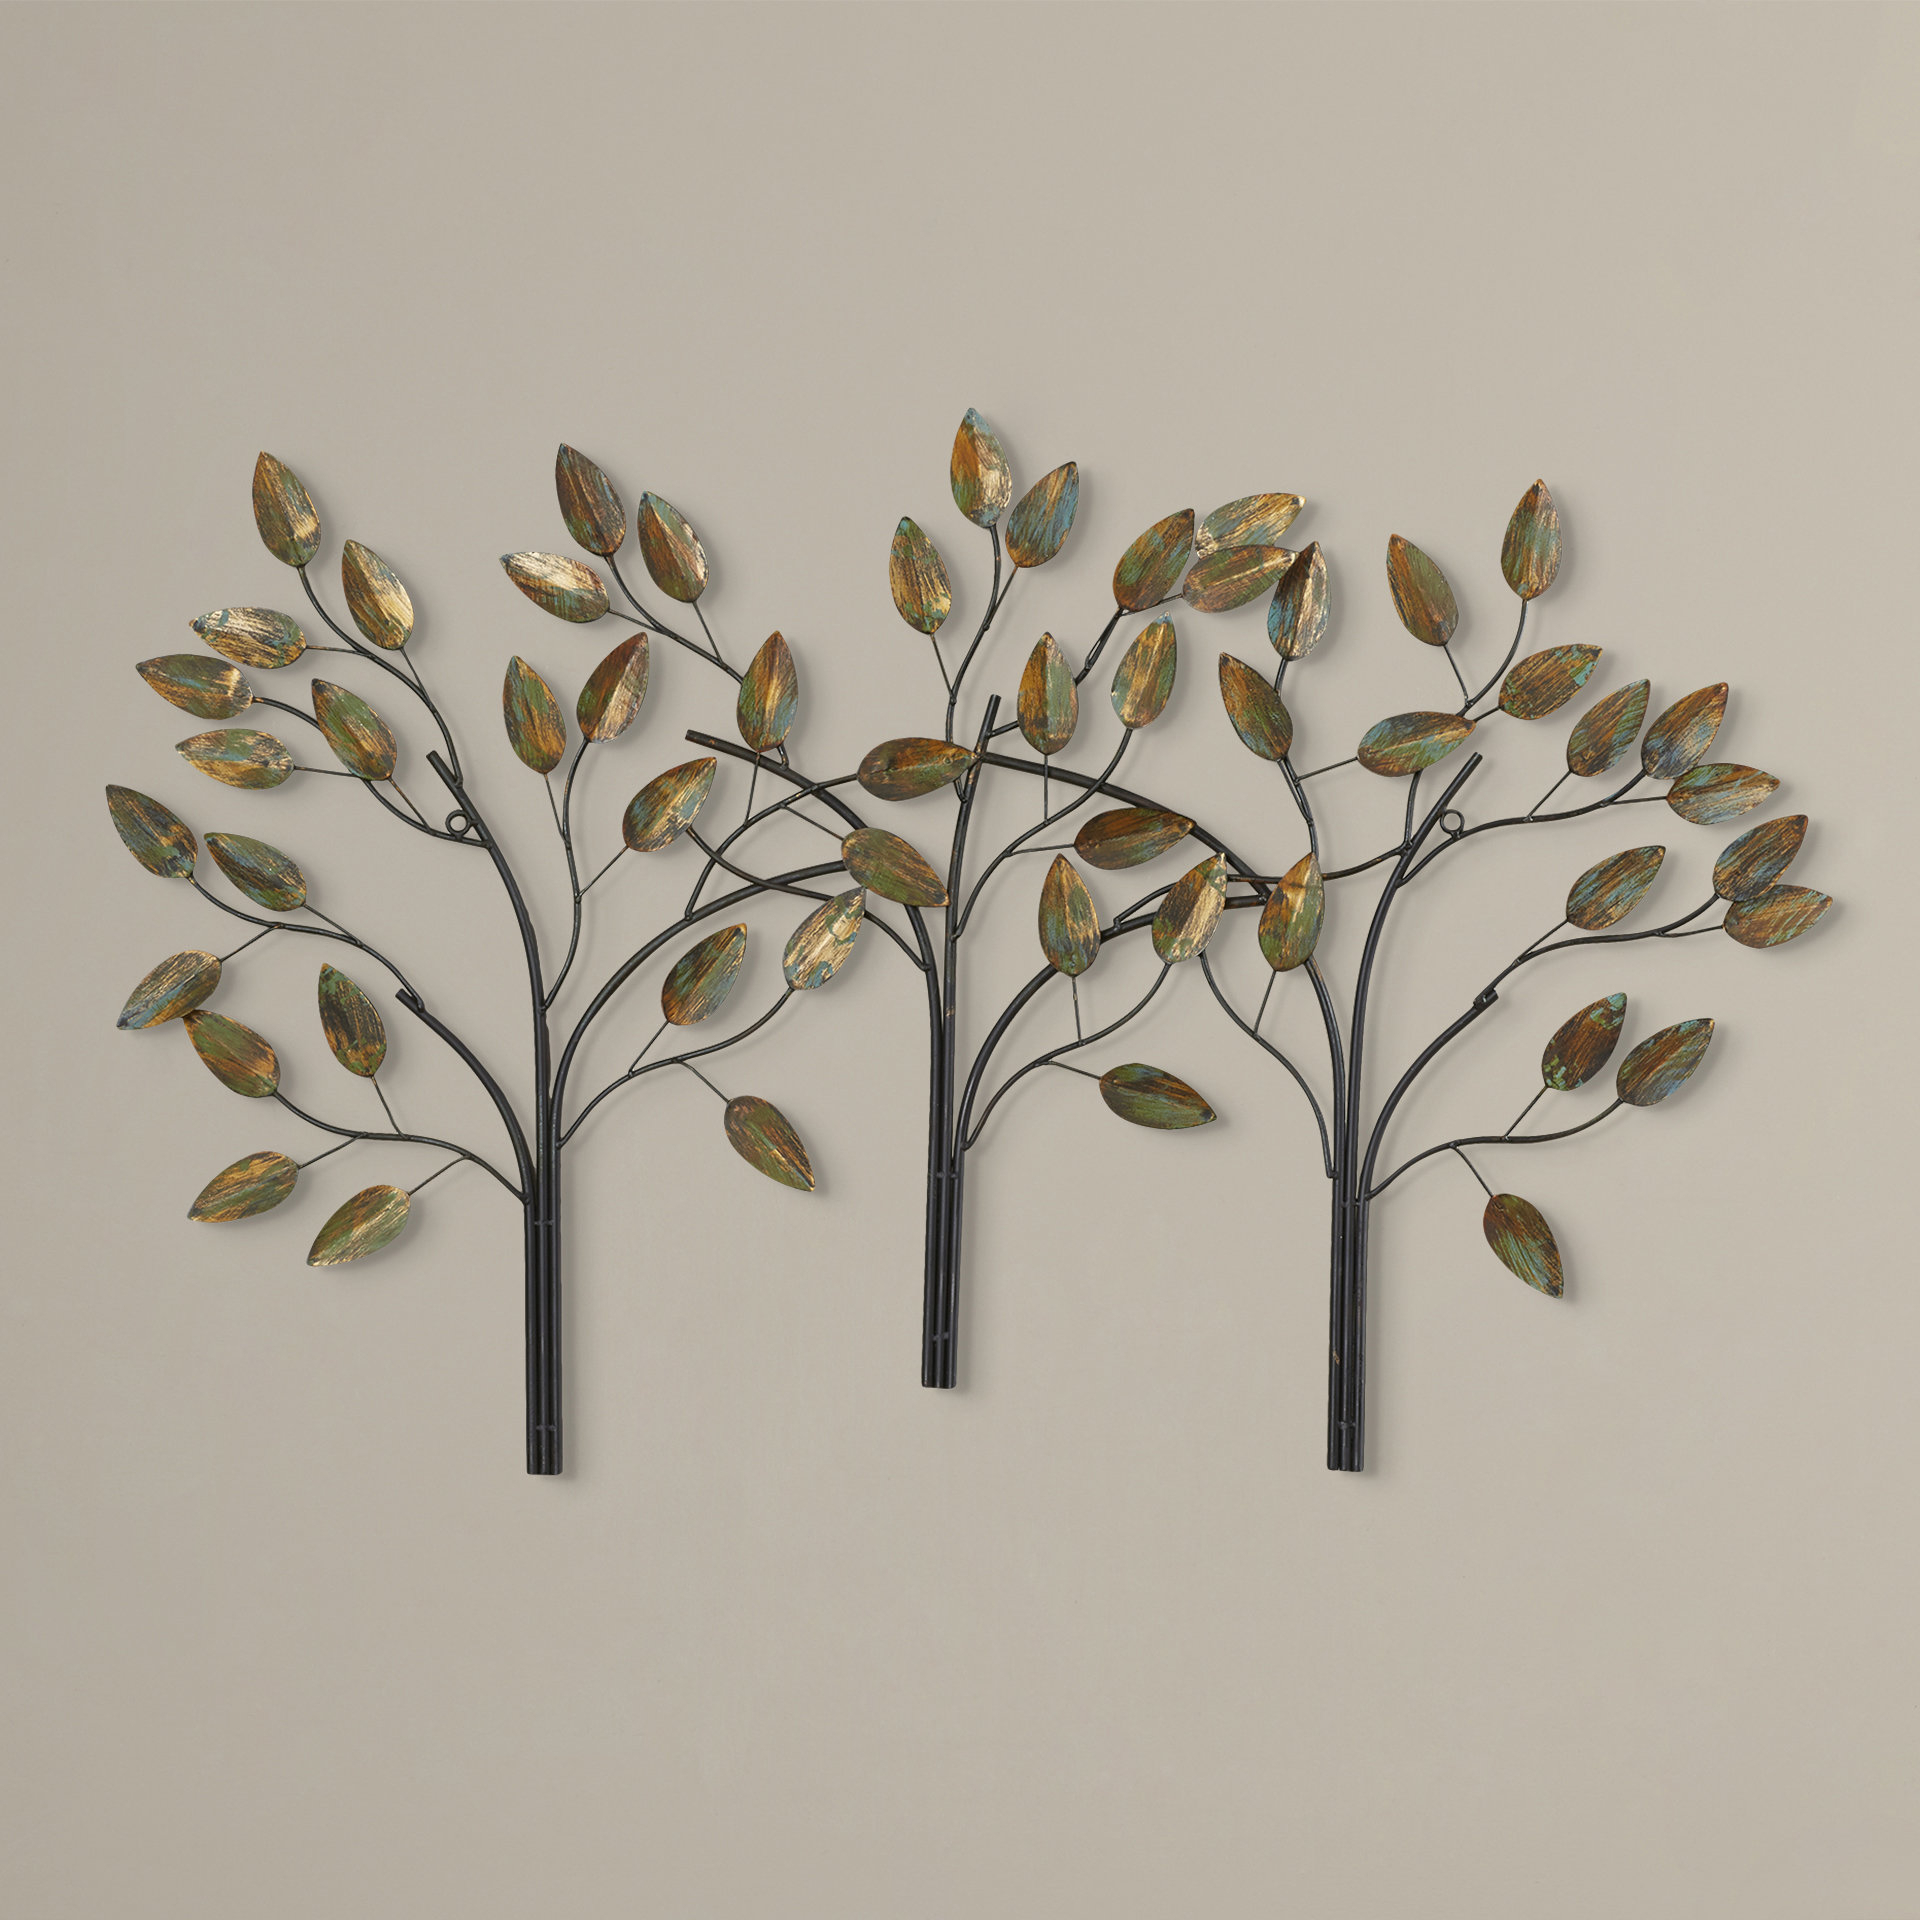 Charlton Home Desford Leaf Wall Décor & Reviews | Wayfair Within Wall Decor By Charlton Home (View 4 of 30)